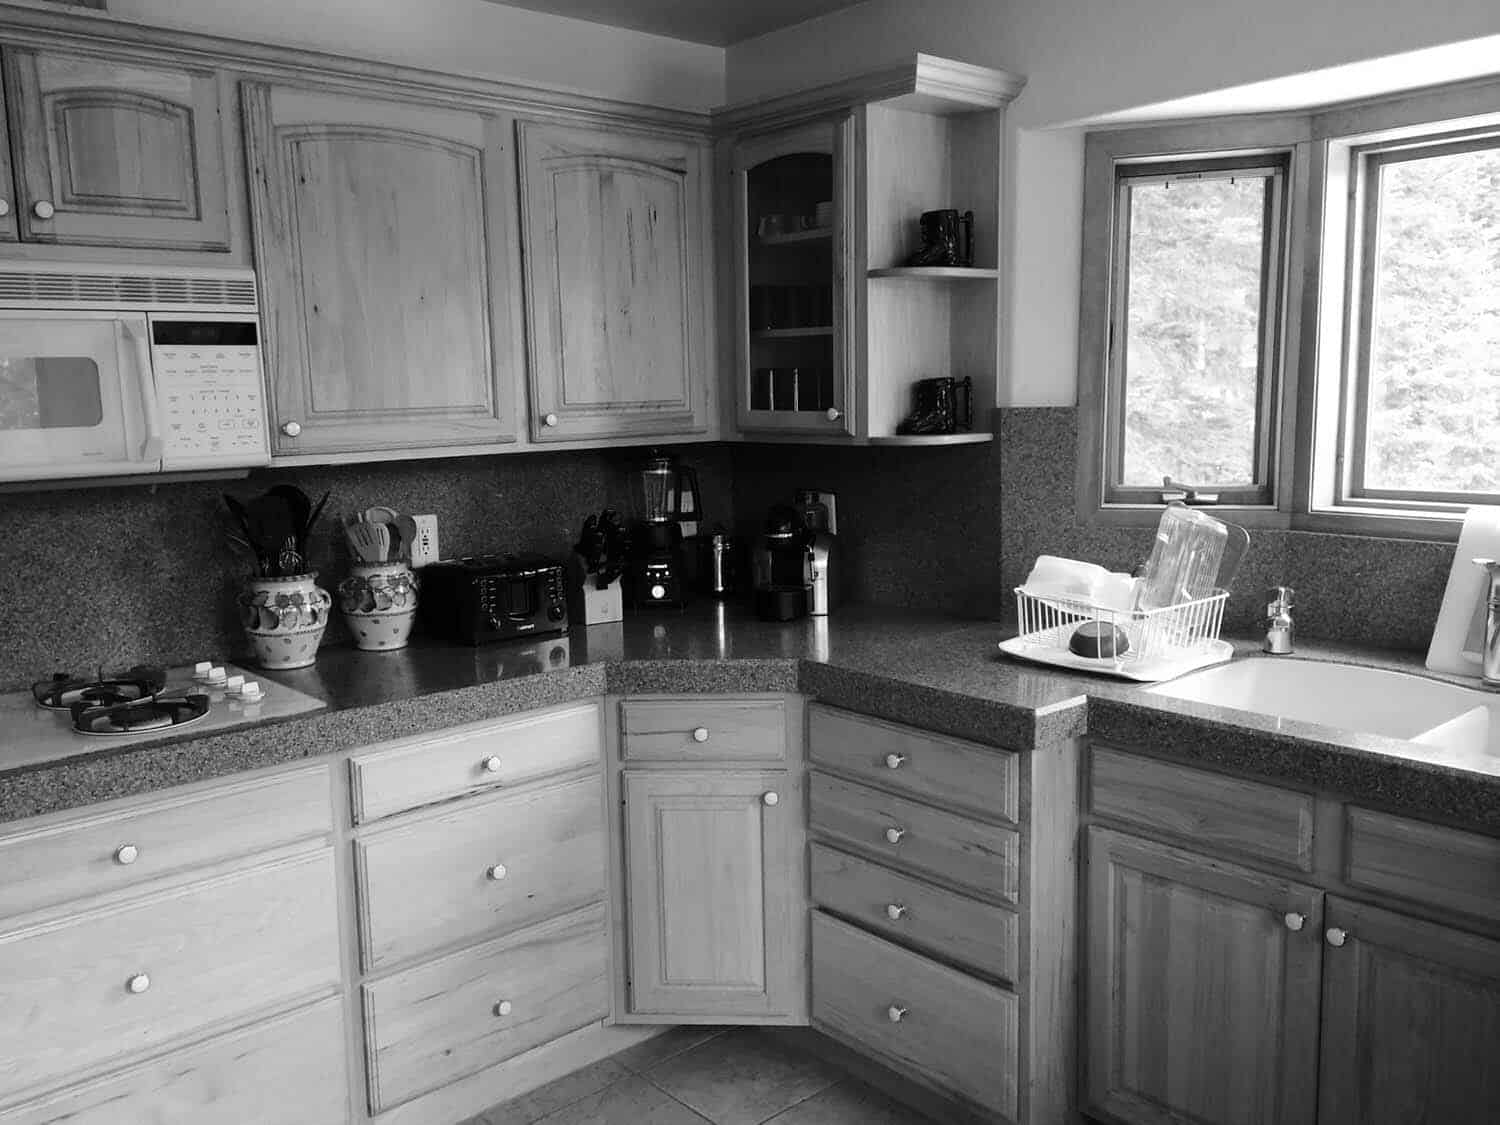 kitchen-before-renovation